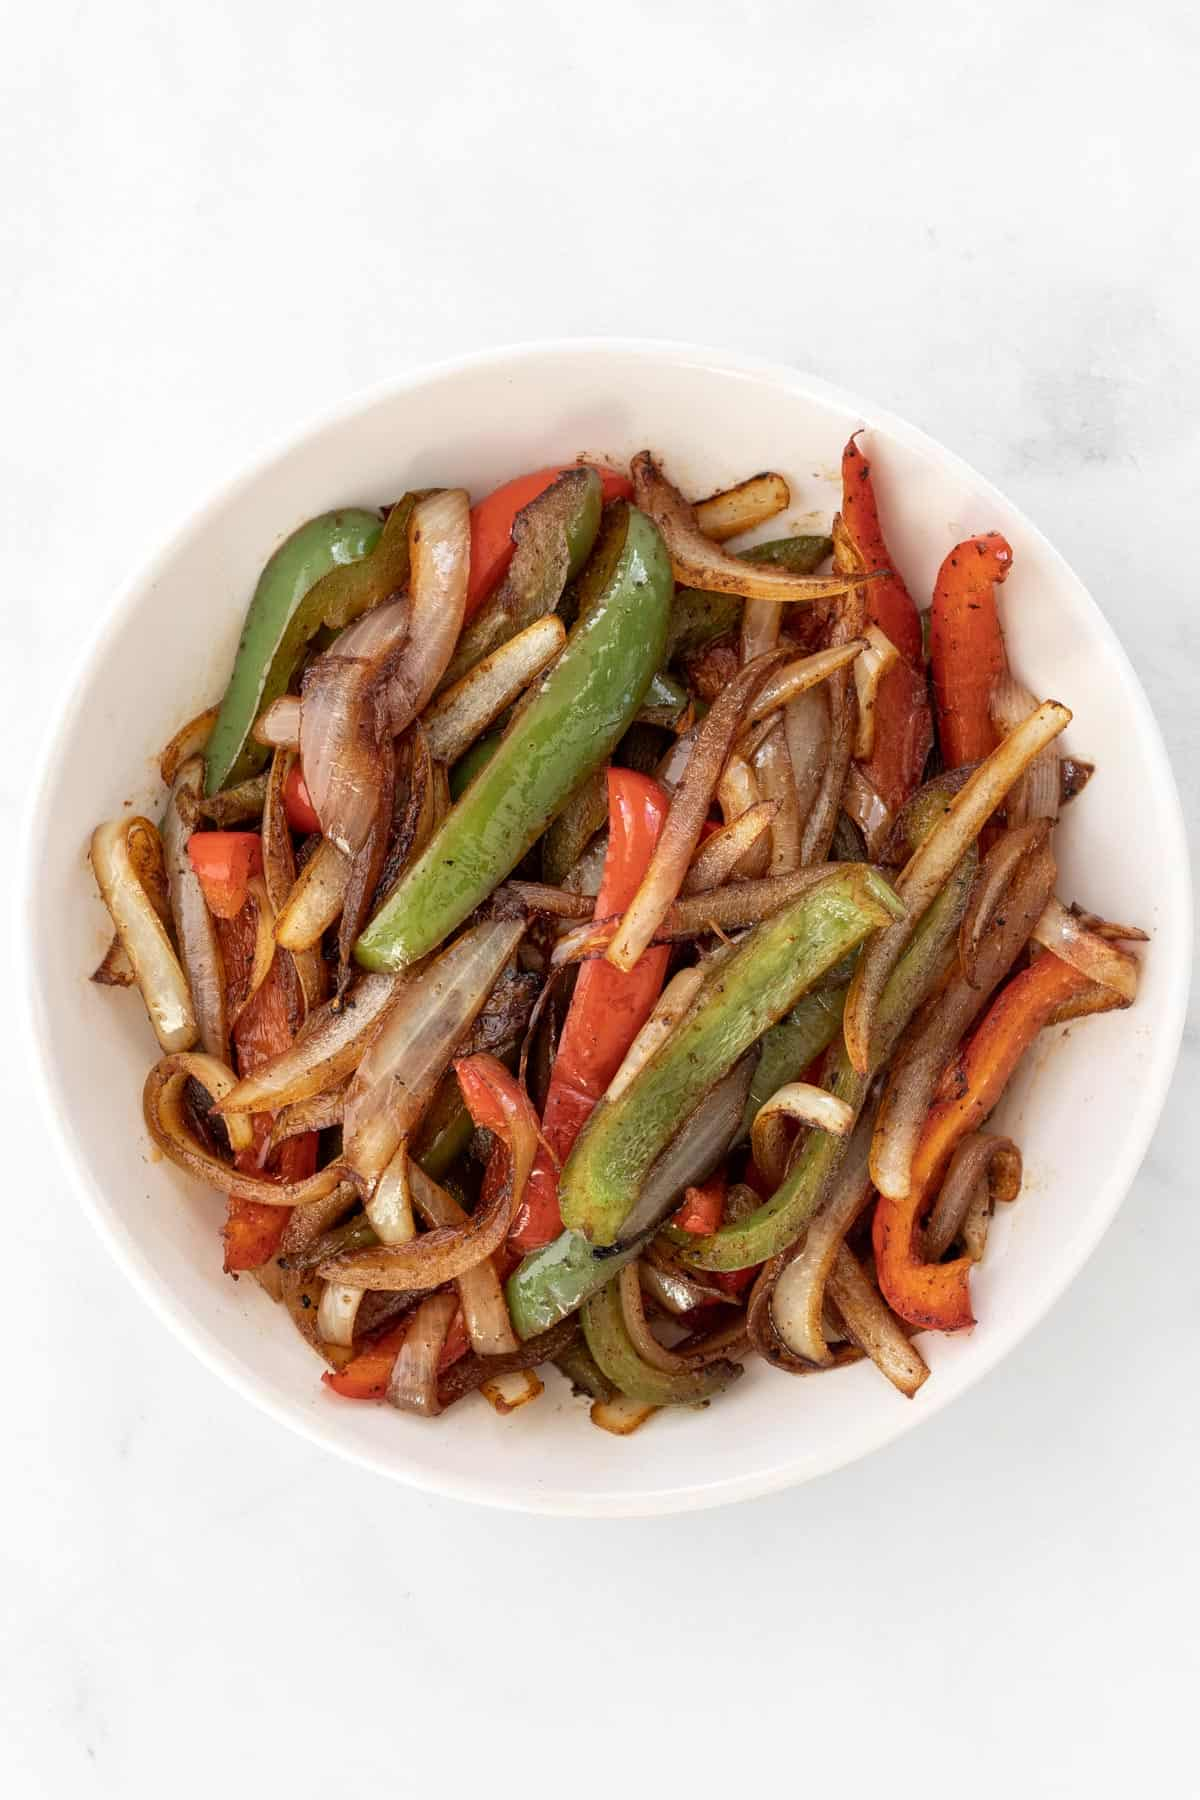 Cooked, seasoned peppers and onions in a white bowl.